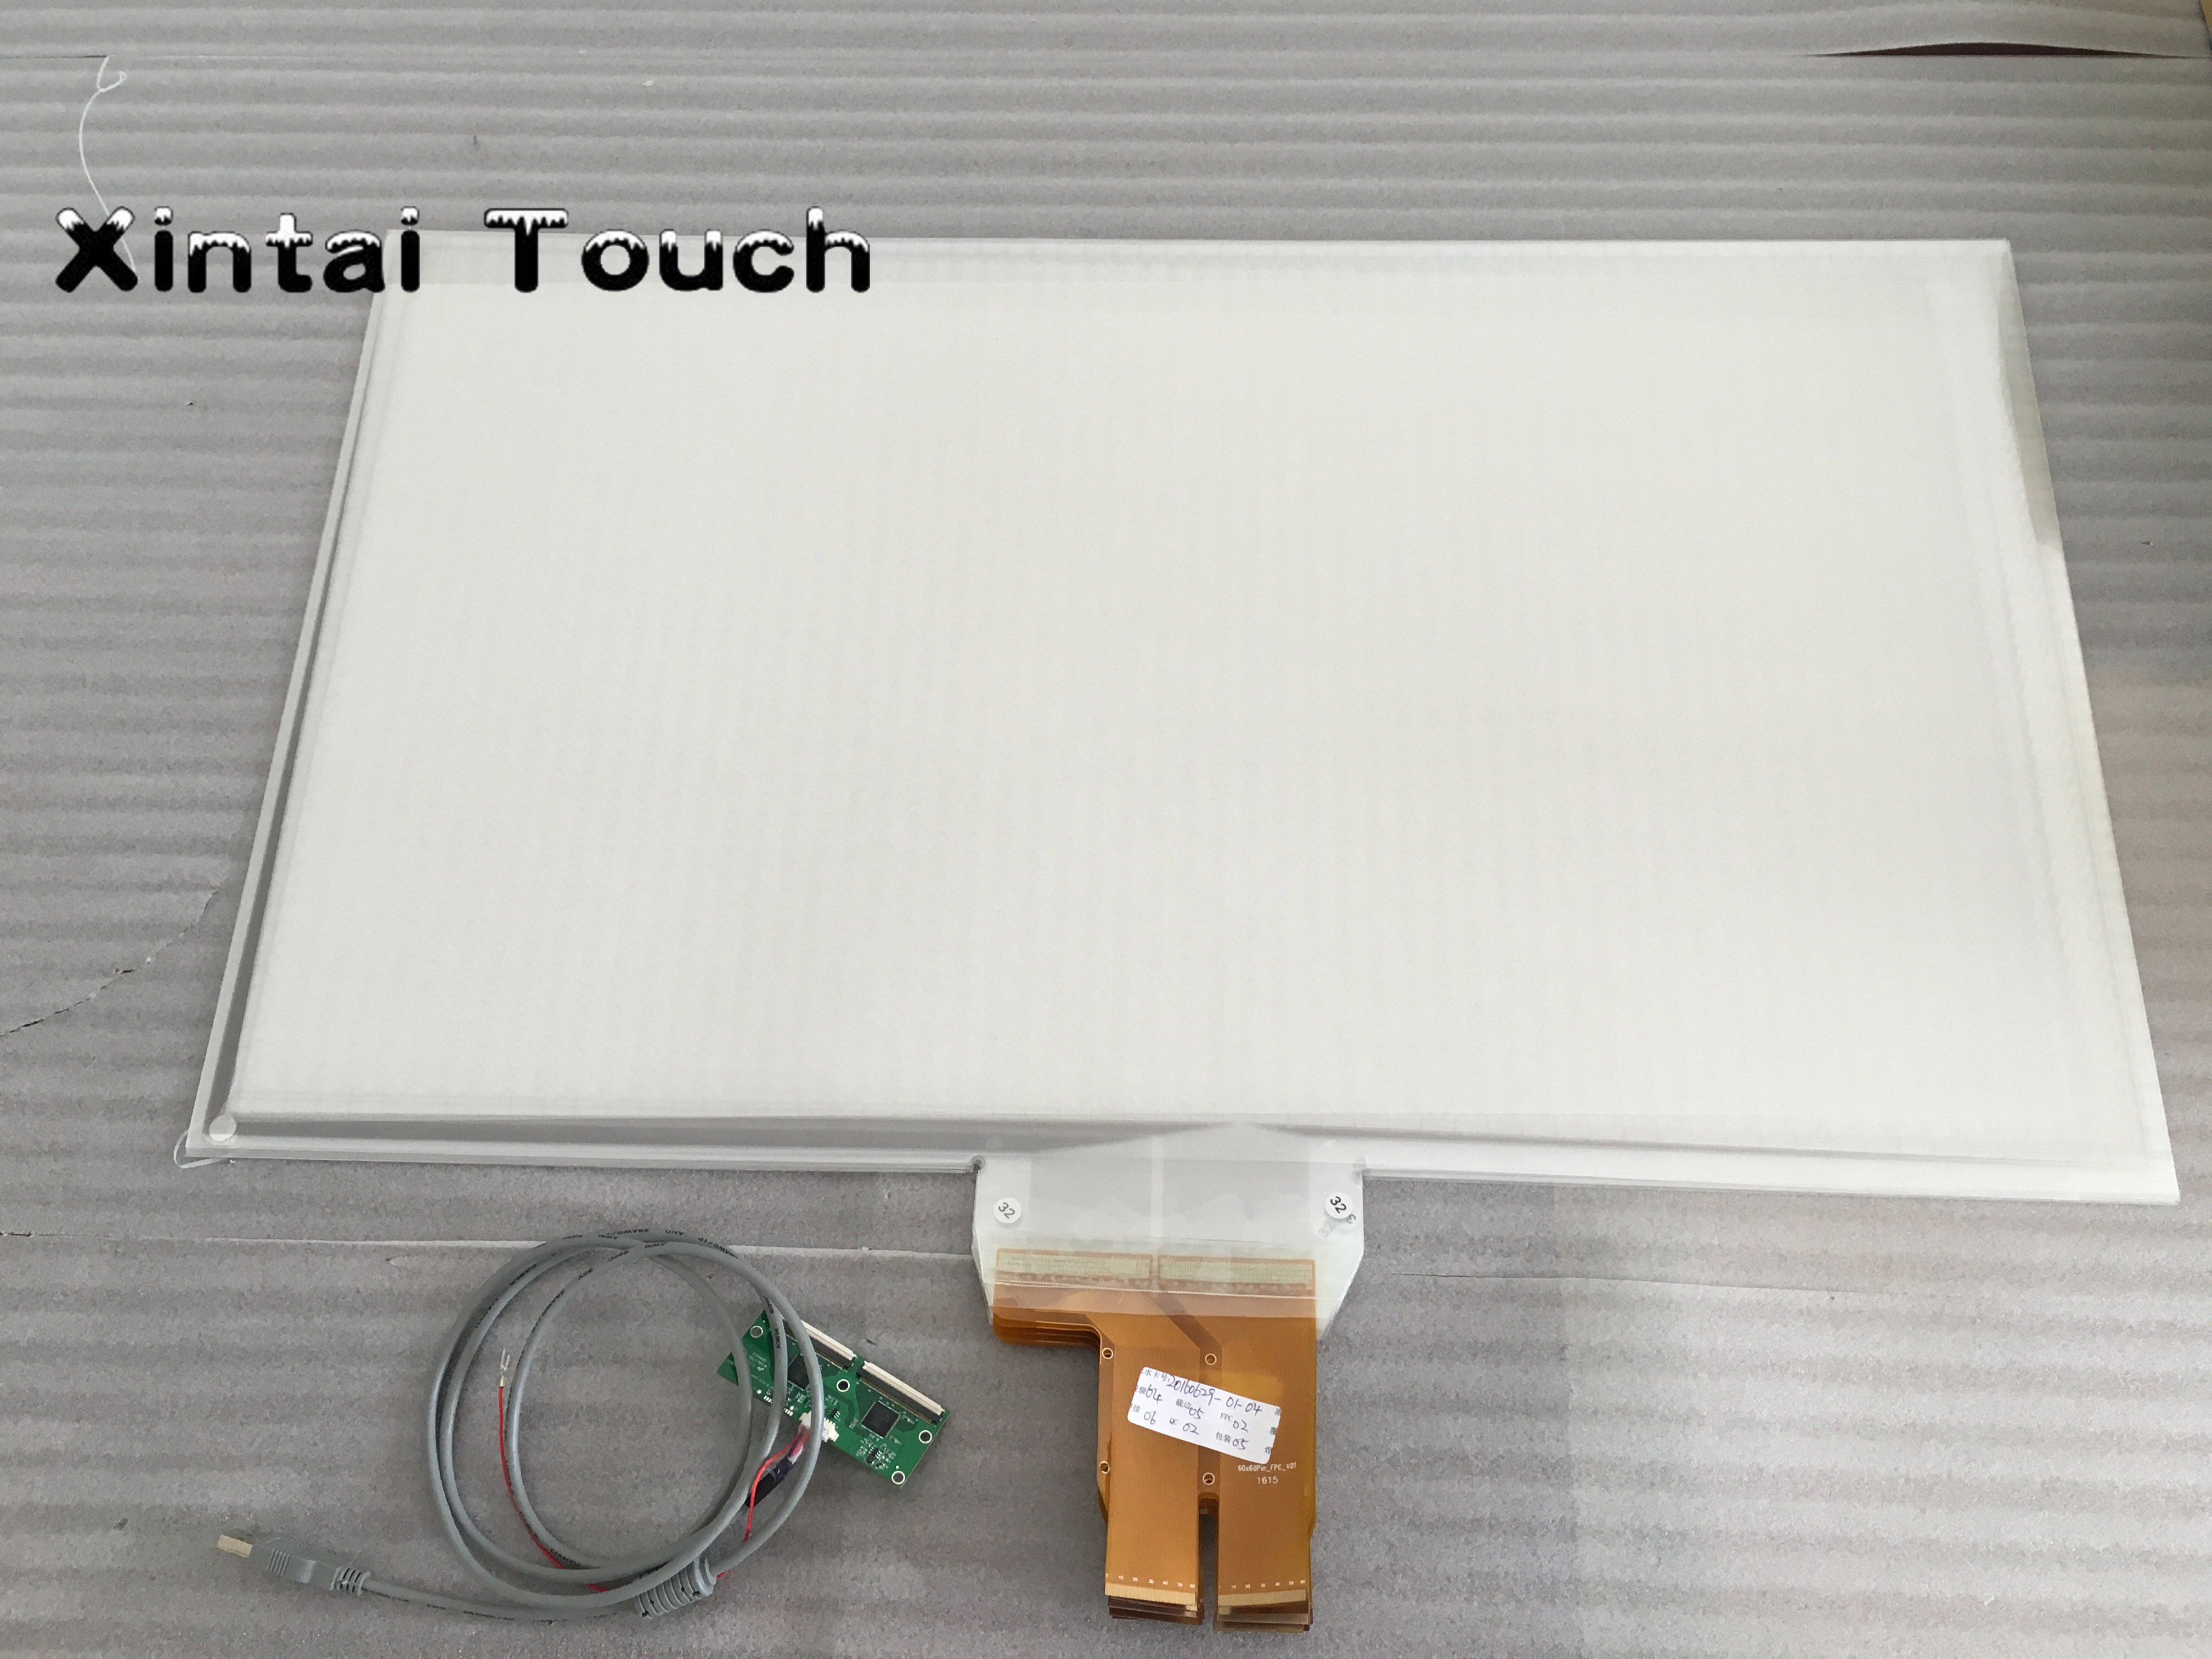 Xintai Touch Fast Shipping 23.8 Transparent Interactive Touch Foil Film,Capacitive Multi Touch Foil Film for LCD MonitorXintai Touch Fast Shipping 23.8 Transparent Interactive Touch Foil Film,Capacitive Multi Touch Foil Film for LCD Monitor